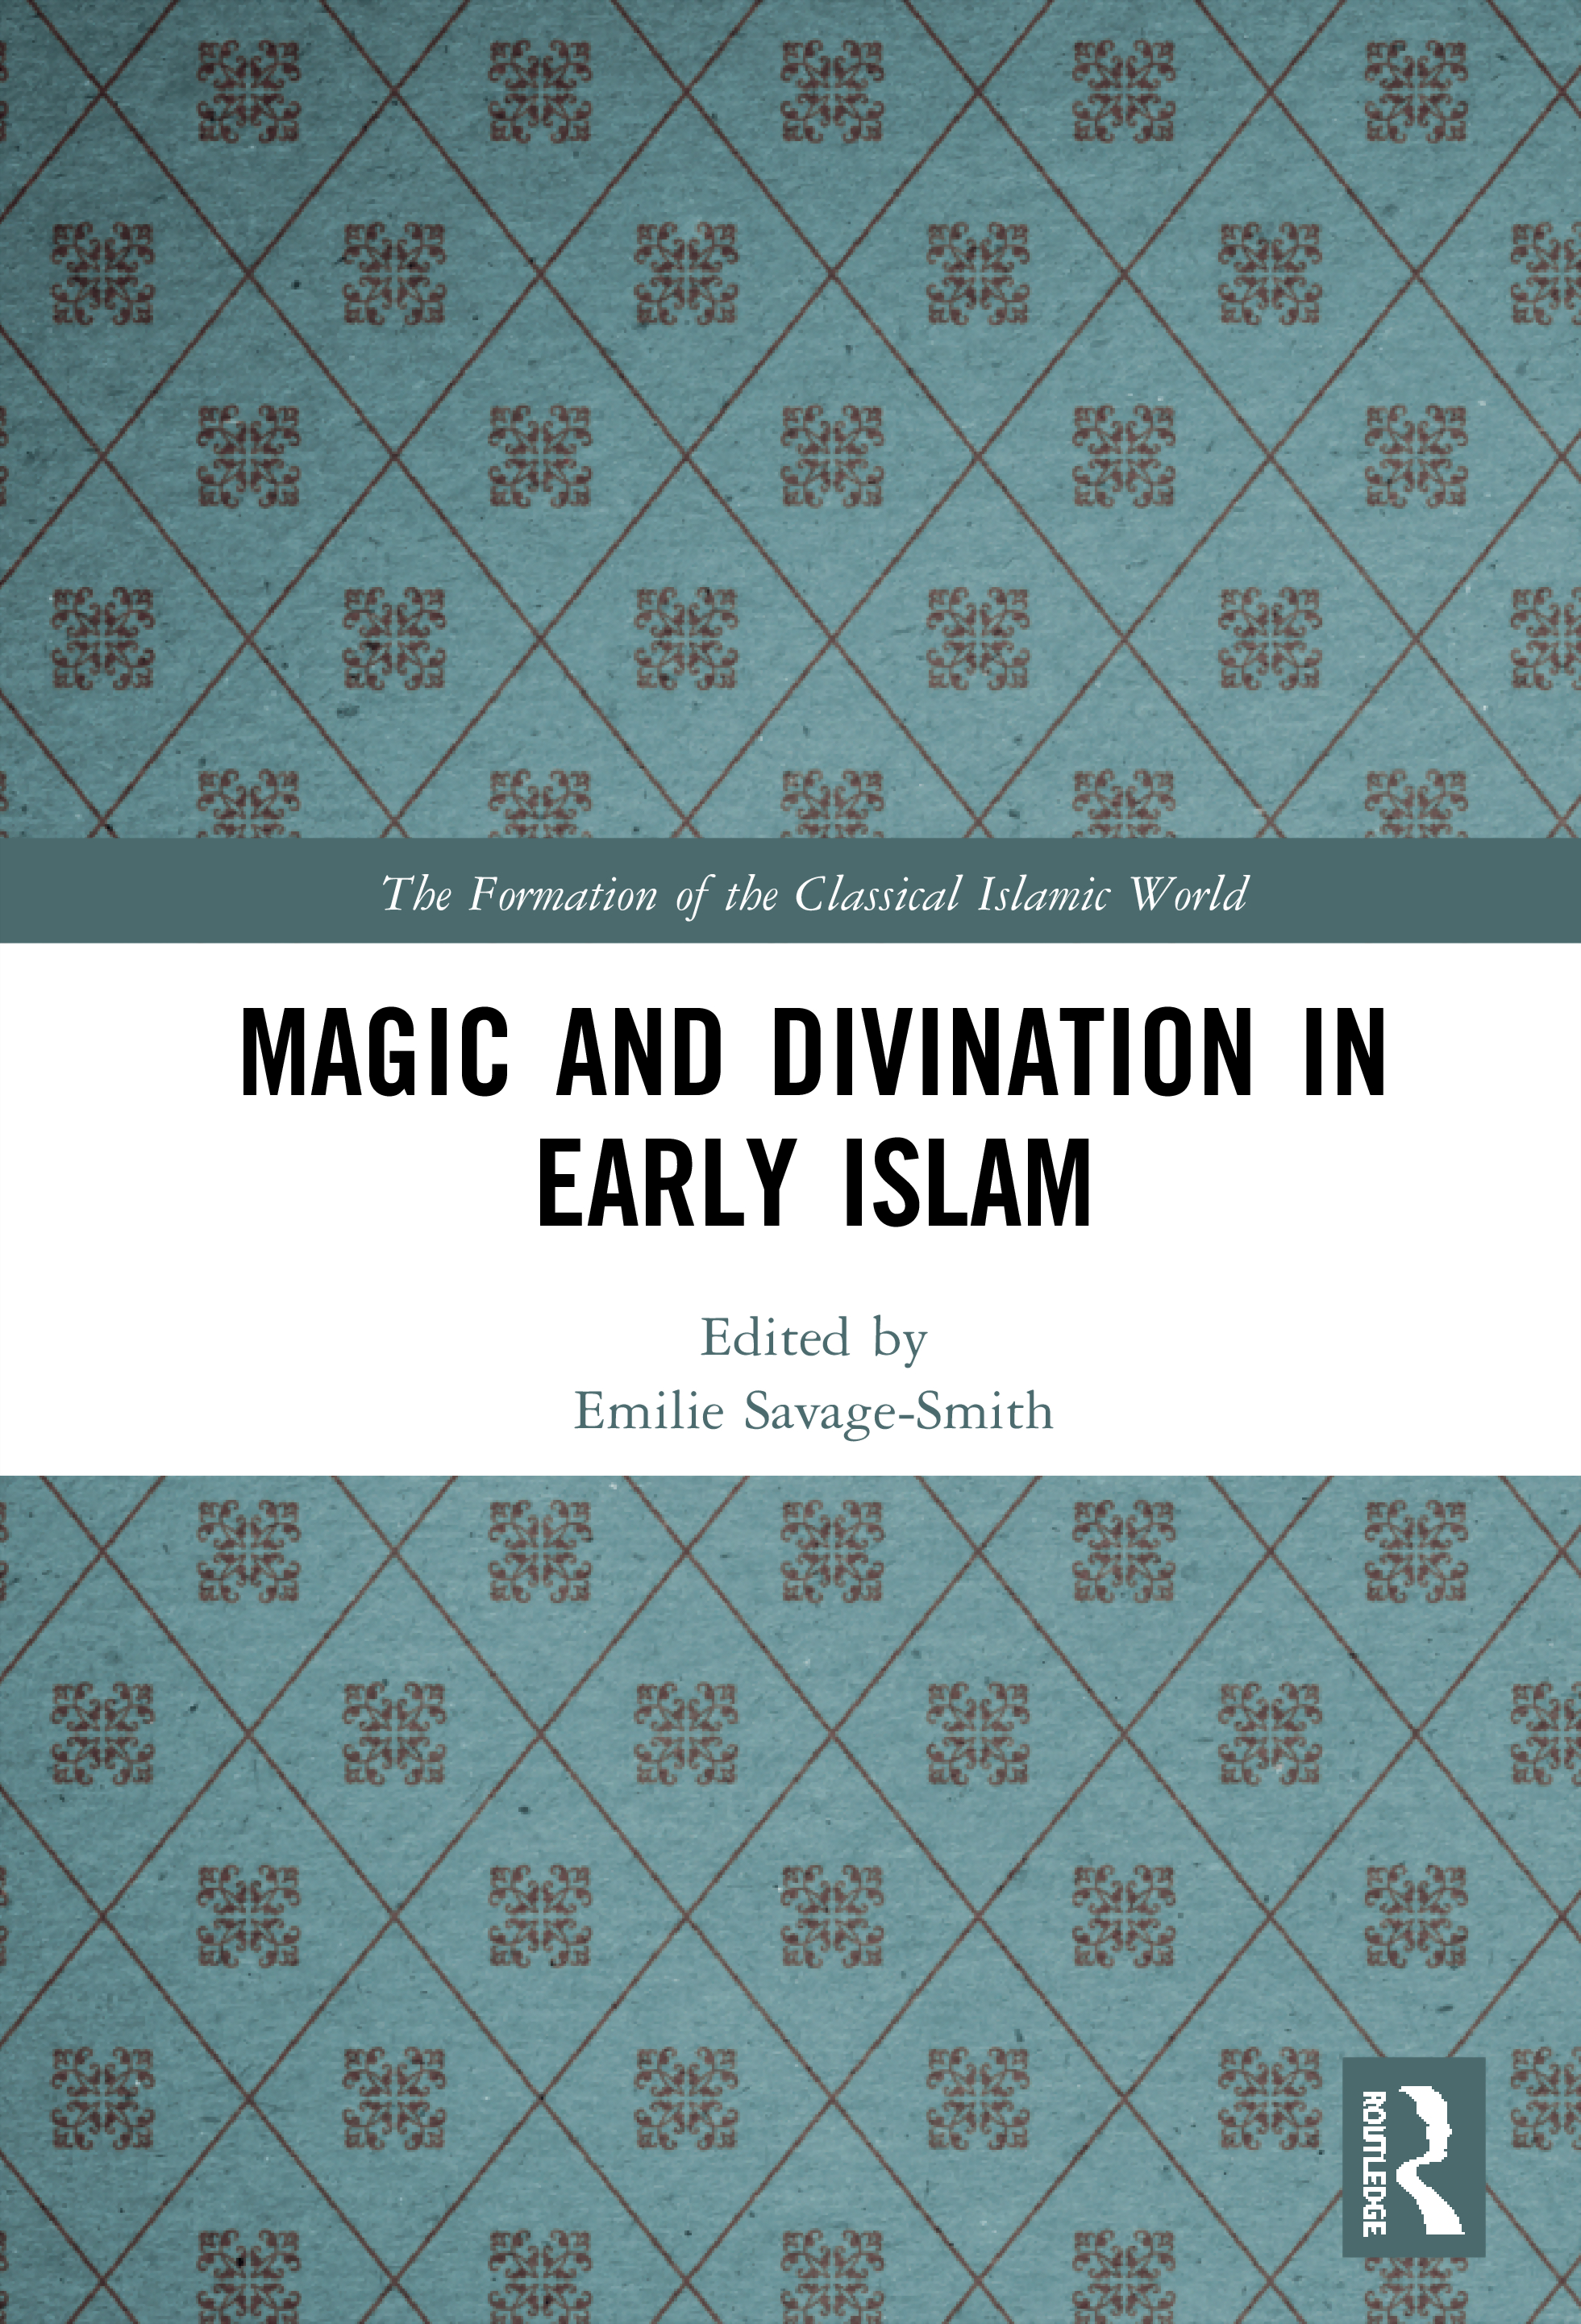 Magic and Divination in Early Islam